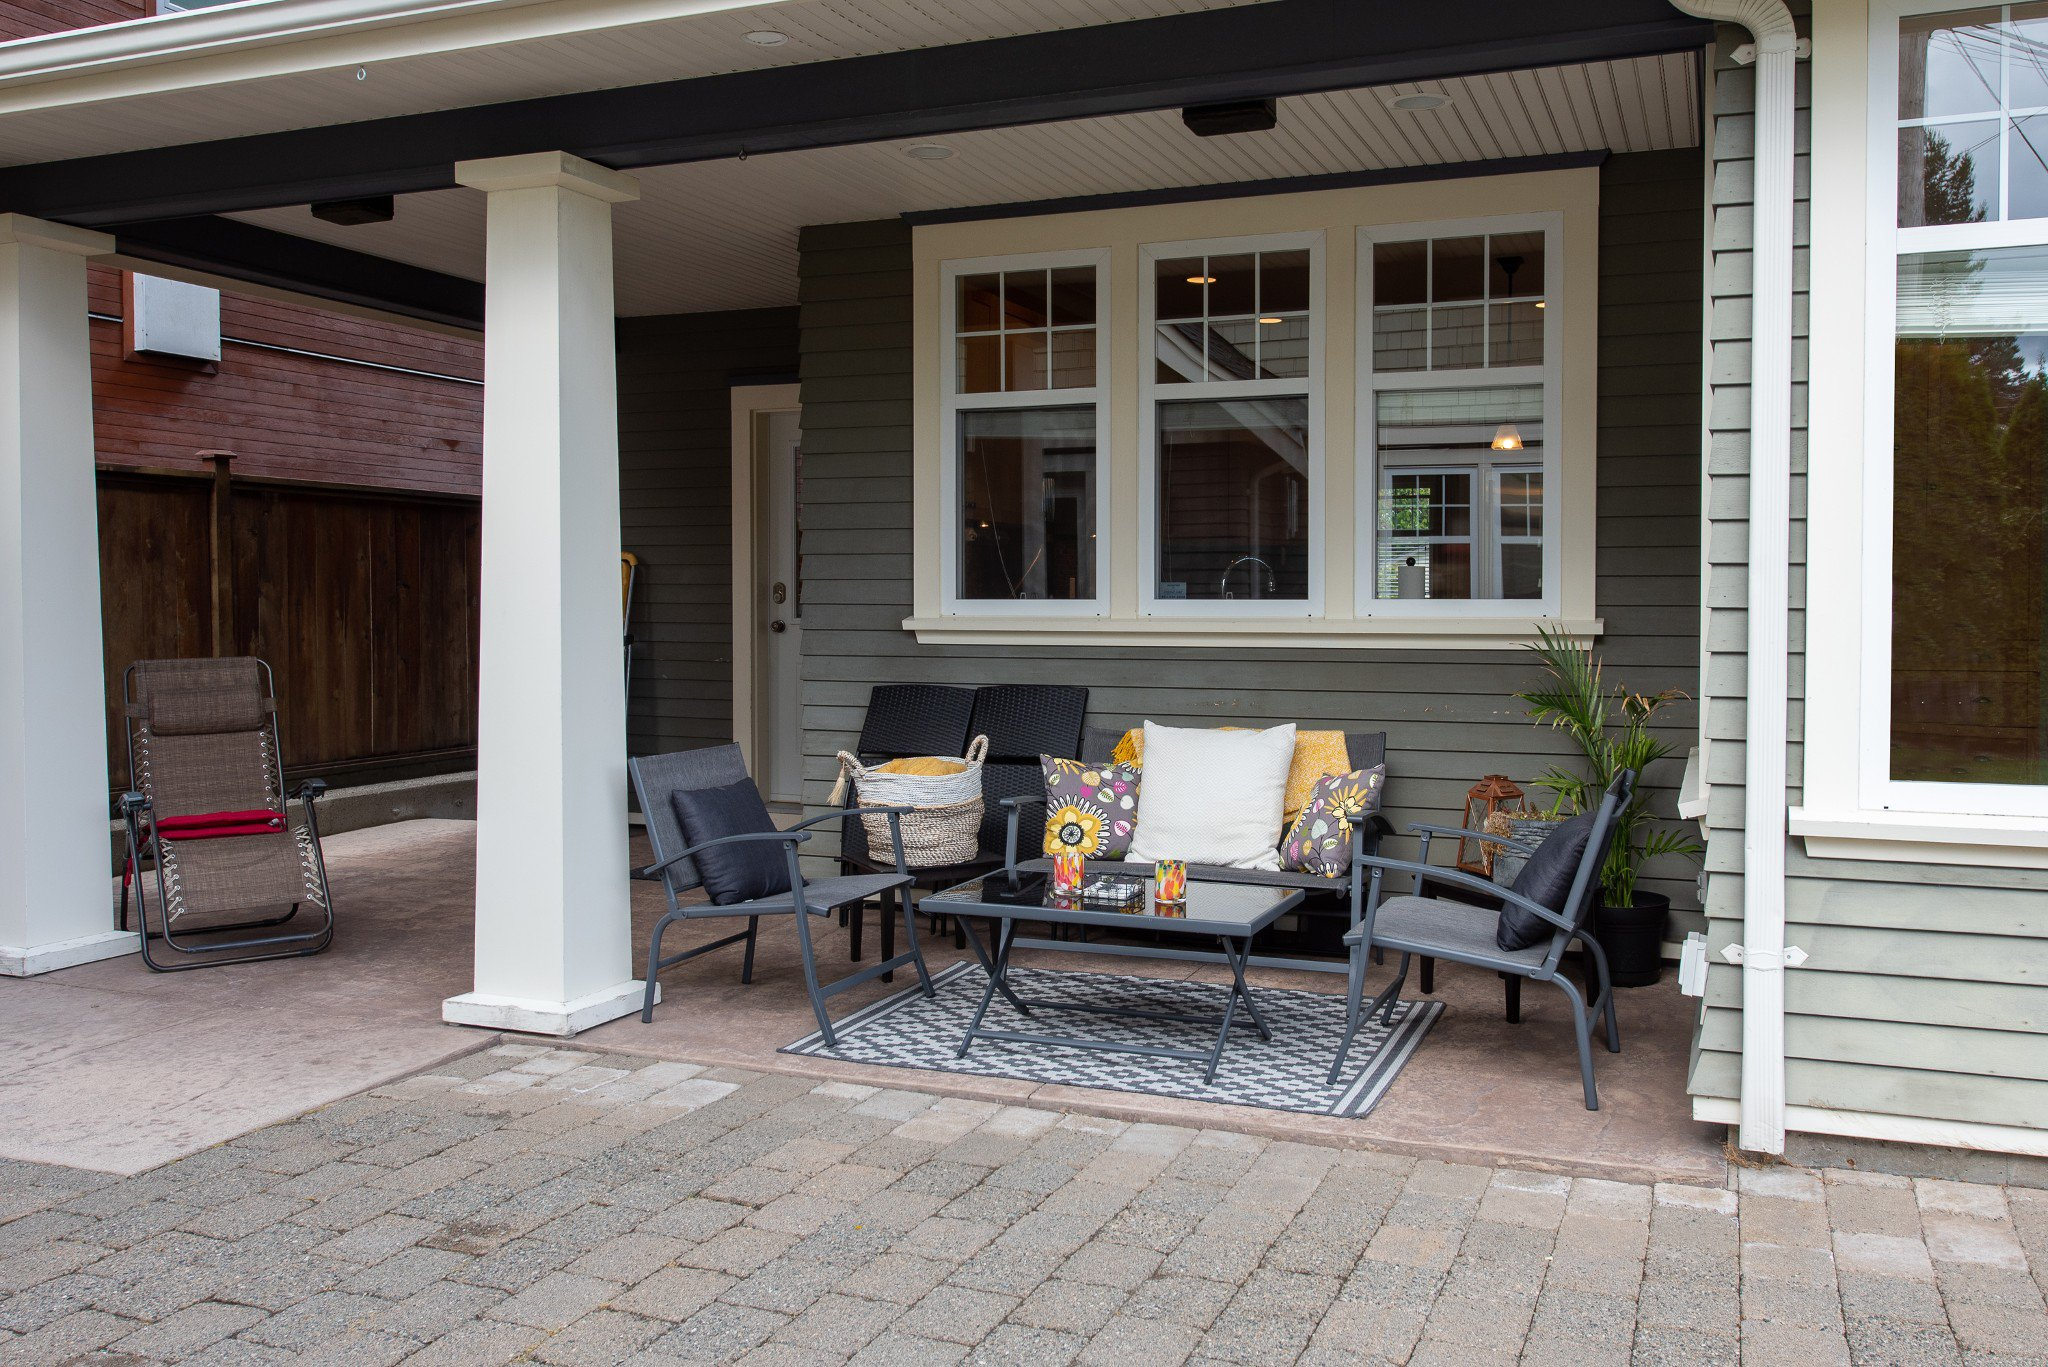 Photo 26: Photos: 902 CHILLIWACK Street in New Westminster: The Heights NW House for sale : MLS®# R2376935